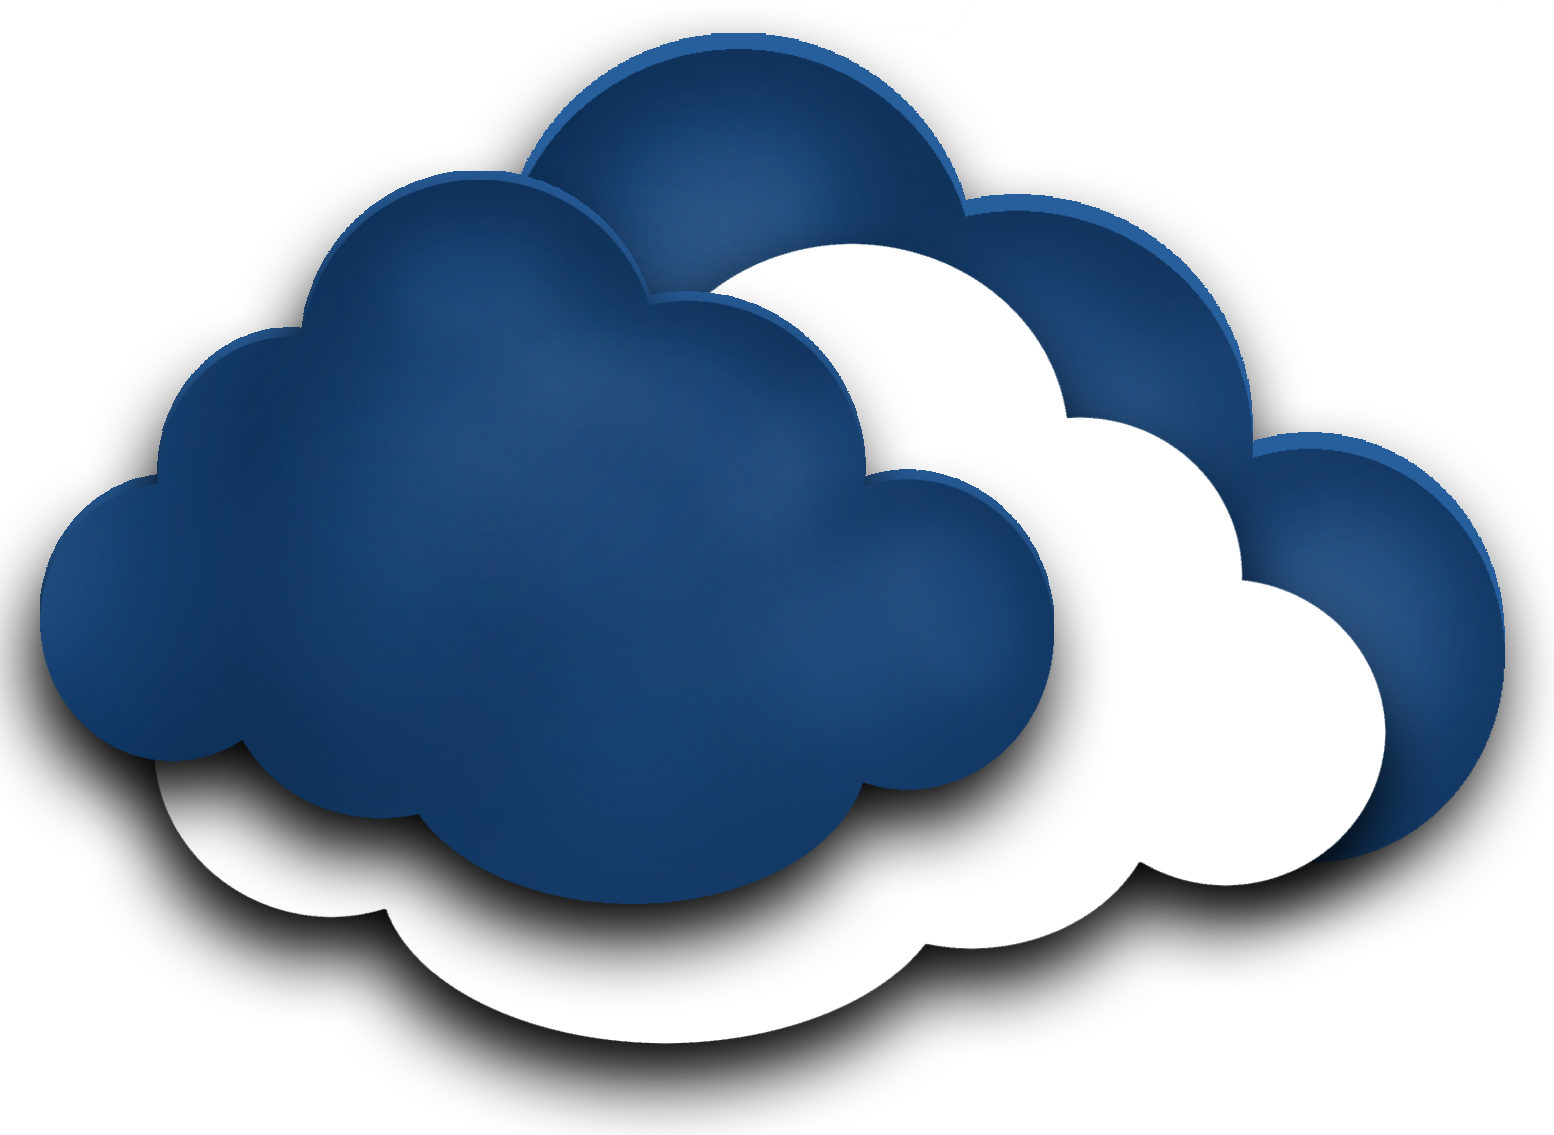 Cloud Computing Clip Art - ClipArt Best